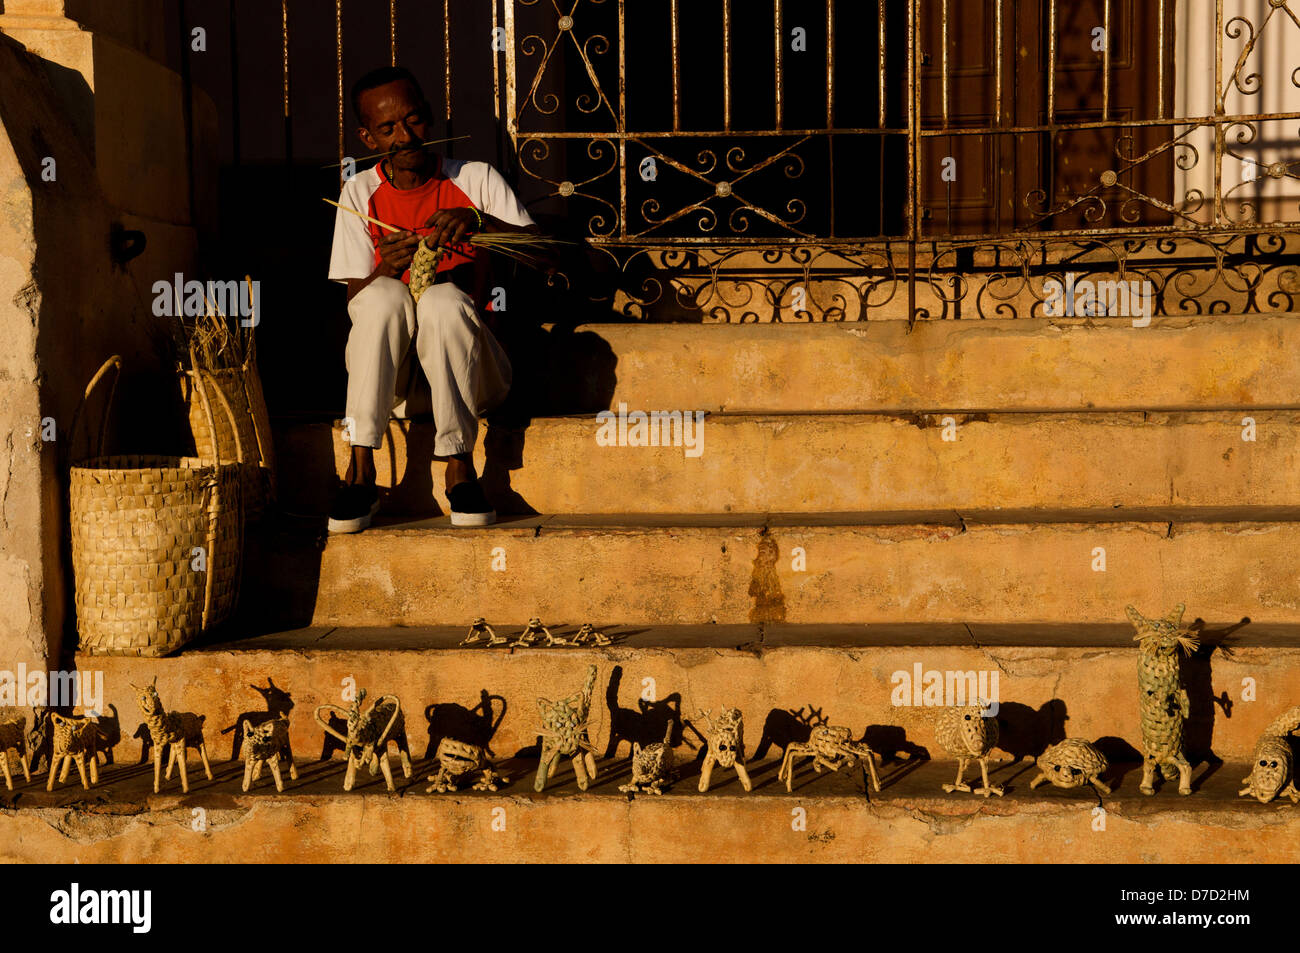 Cuban man making straw animals on steps, Trinidad, Sancti Spíritus province, Cuba. © Kraig Lieb - Stock Image